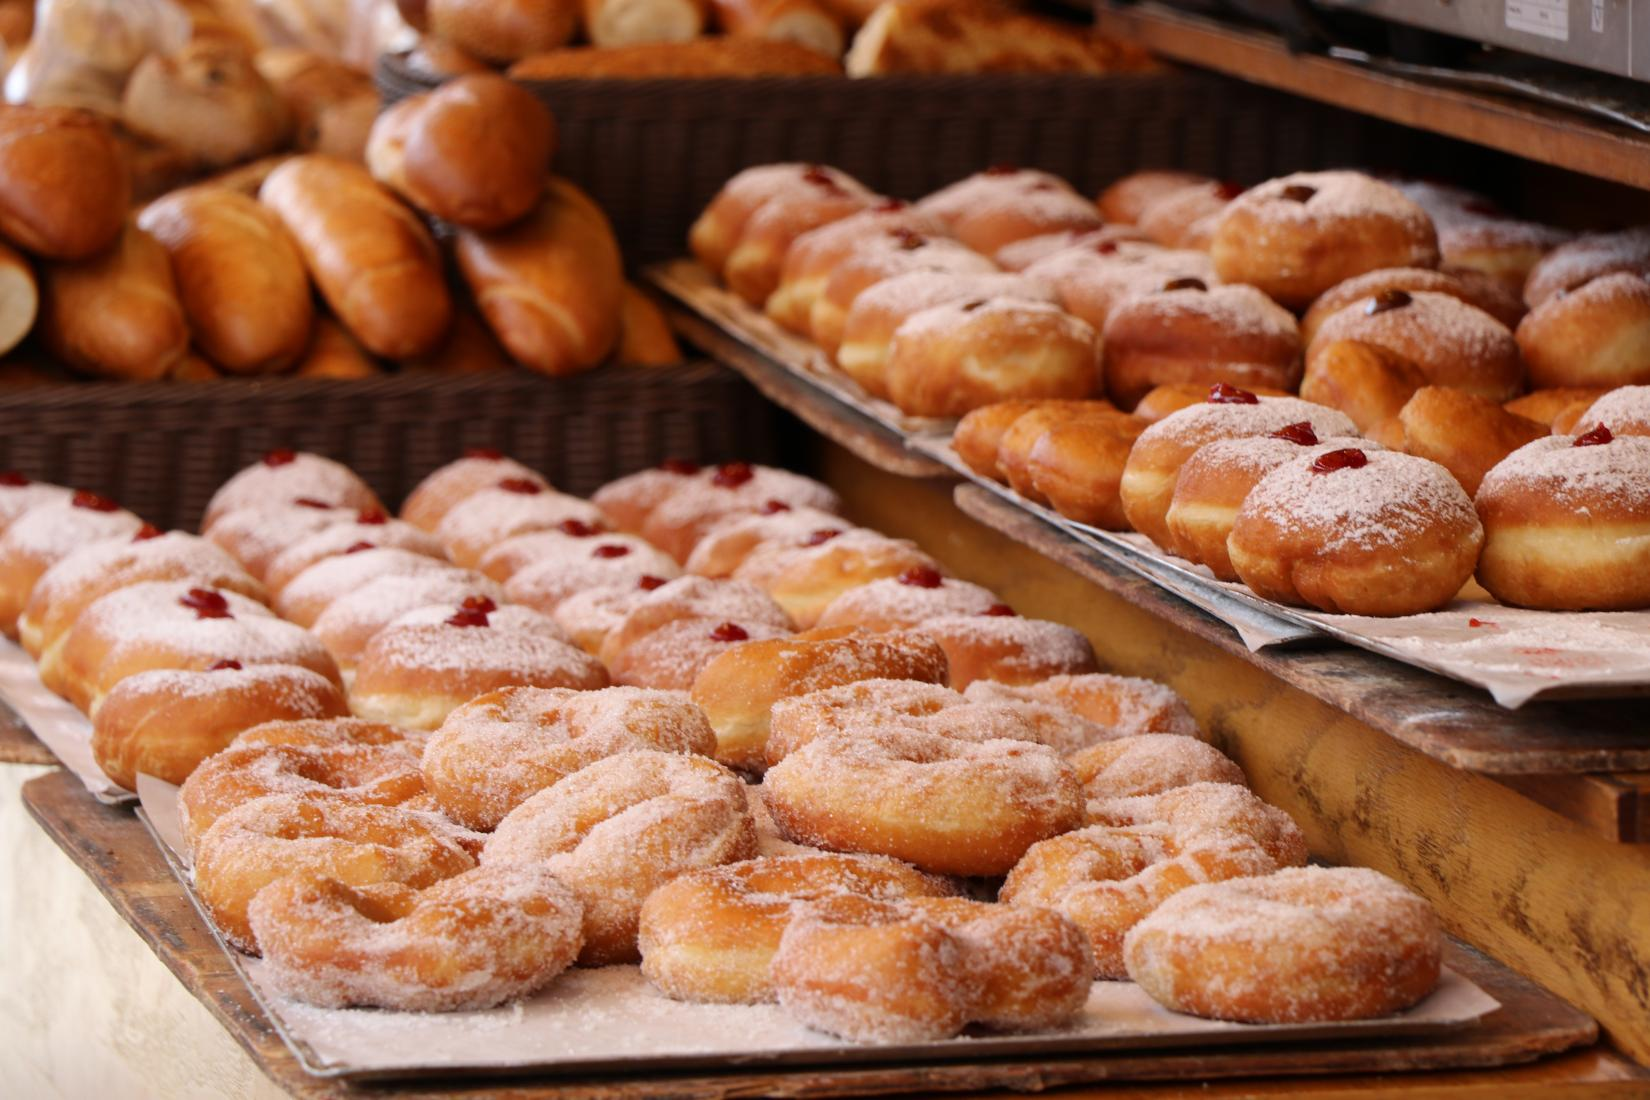 Filtration of cooking oil in doughnut production